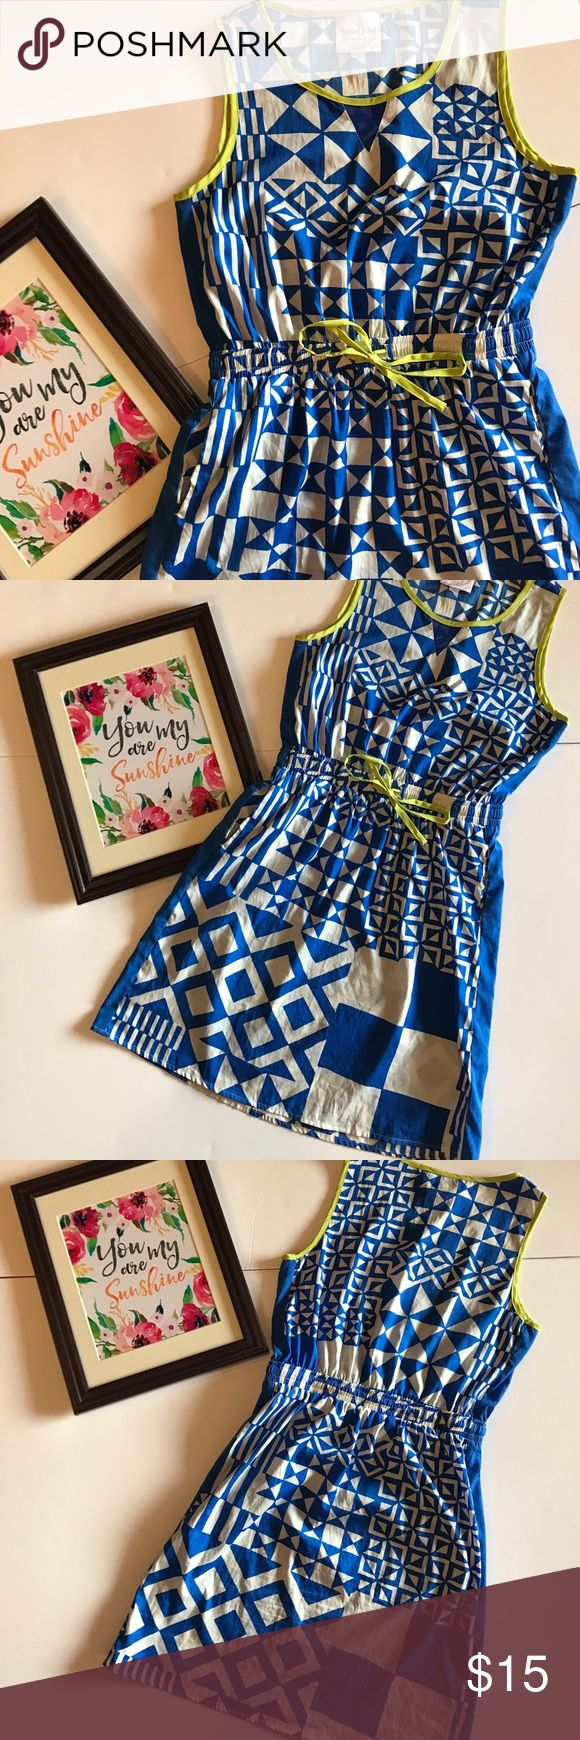 Romeo & Juliet Couture dress Geometric print blue and white sleeveless dress w/ neon yellow around scoop neck, arms and tie at elastic waist. Also has a sheer blue material in shape of a V at the bottom of the scoop. Pull over style. 100% polyester. In good condition. Romeo & Juliet Couture Dresses